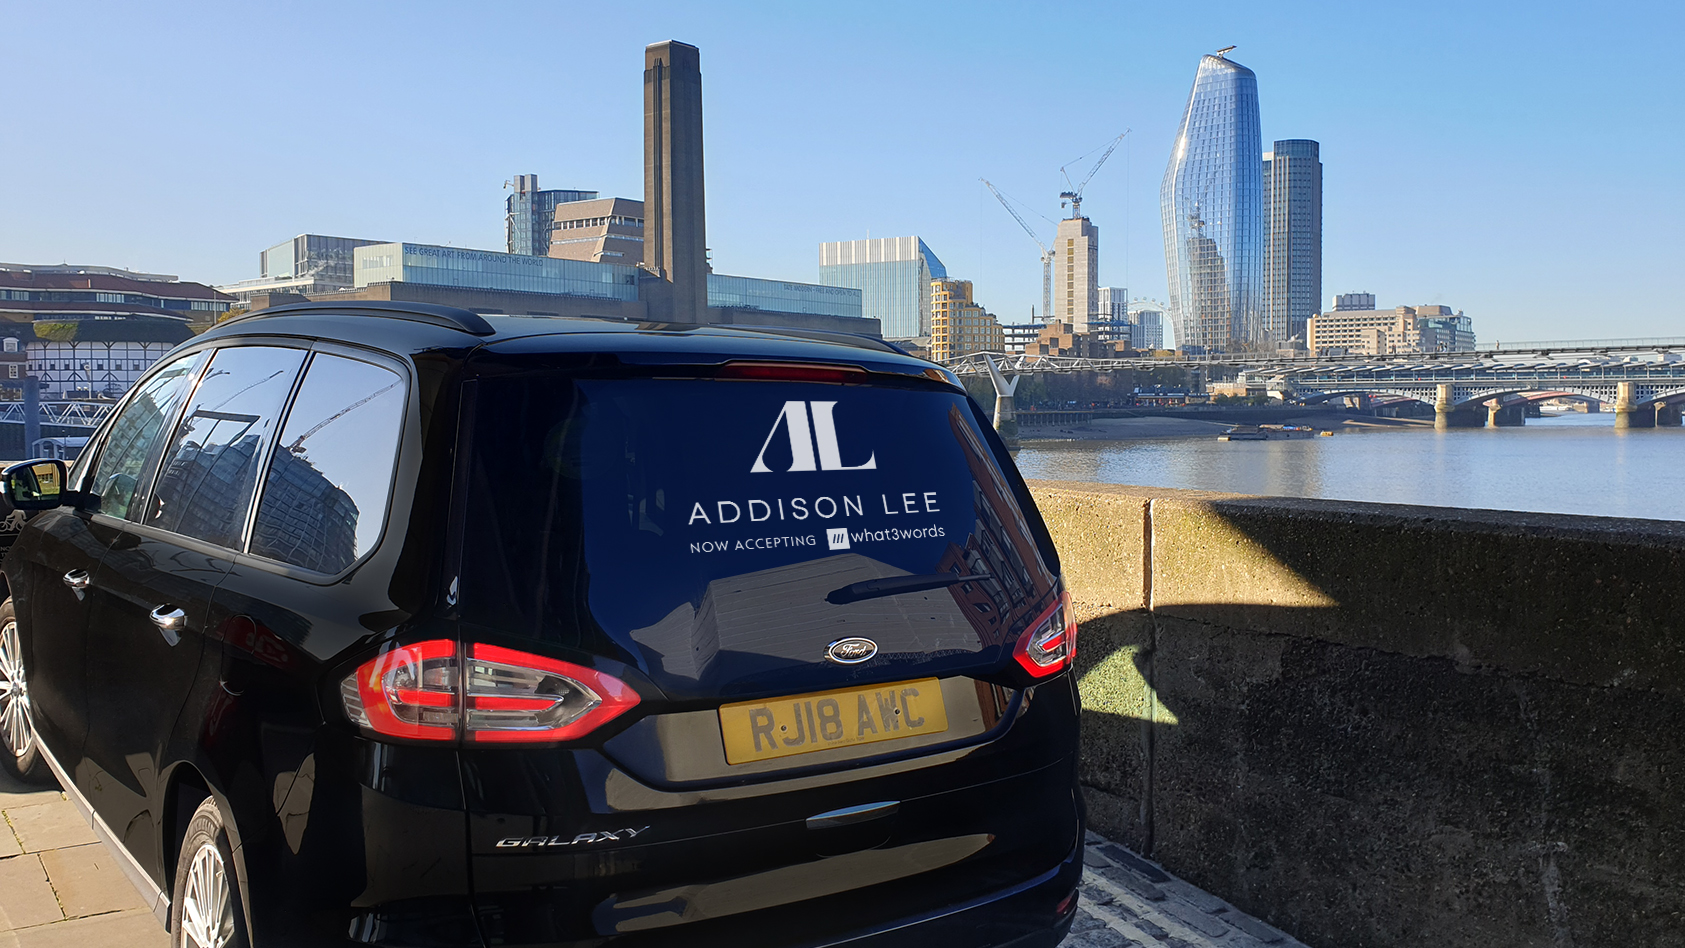 Addison Lee car with 'now accepting what3words' sticker